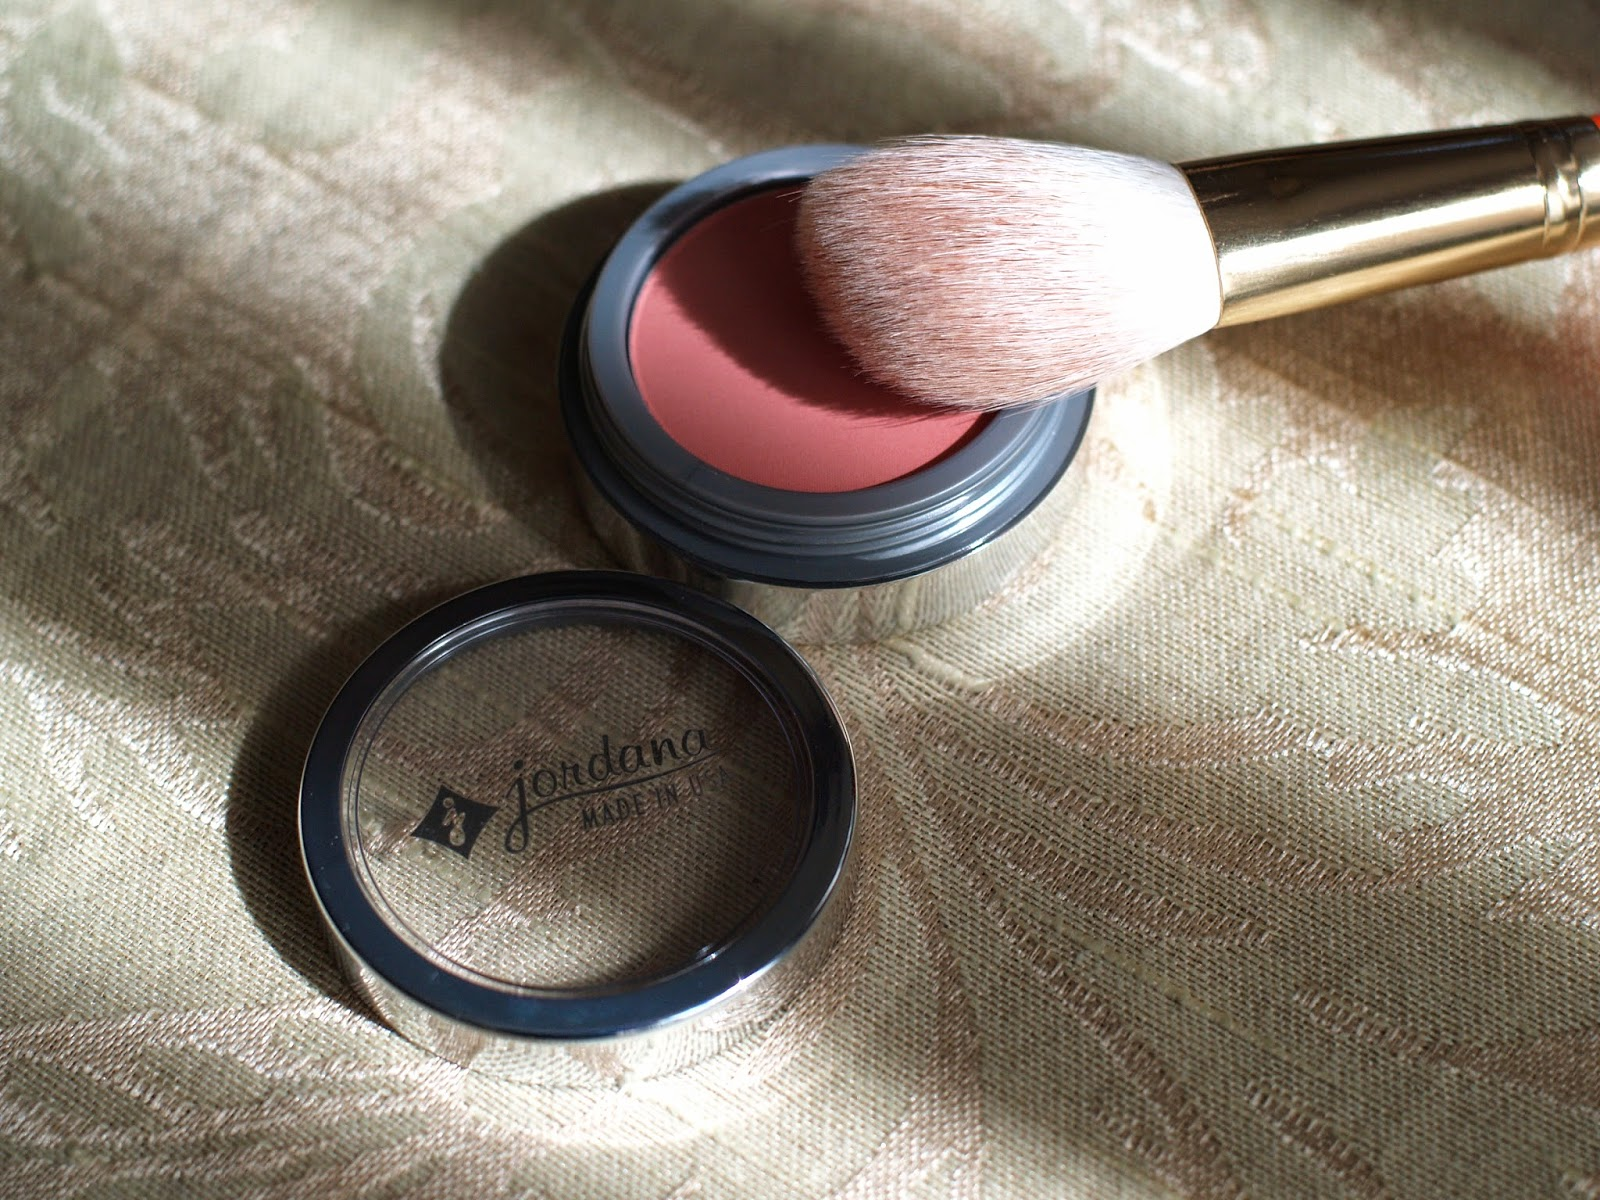 Jordana Blush Powder